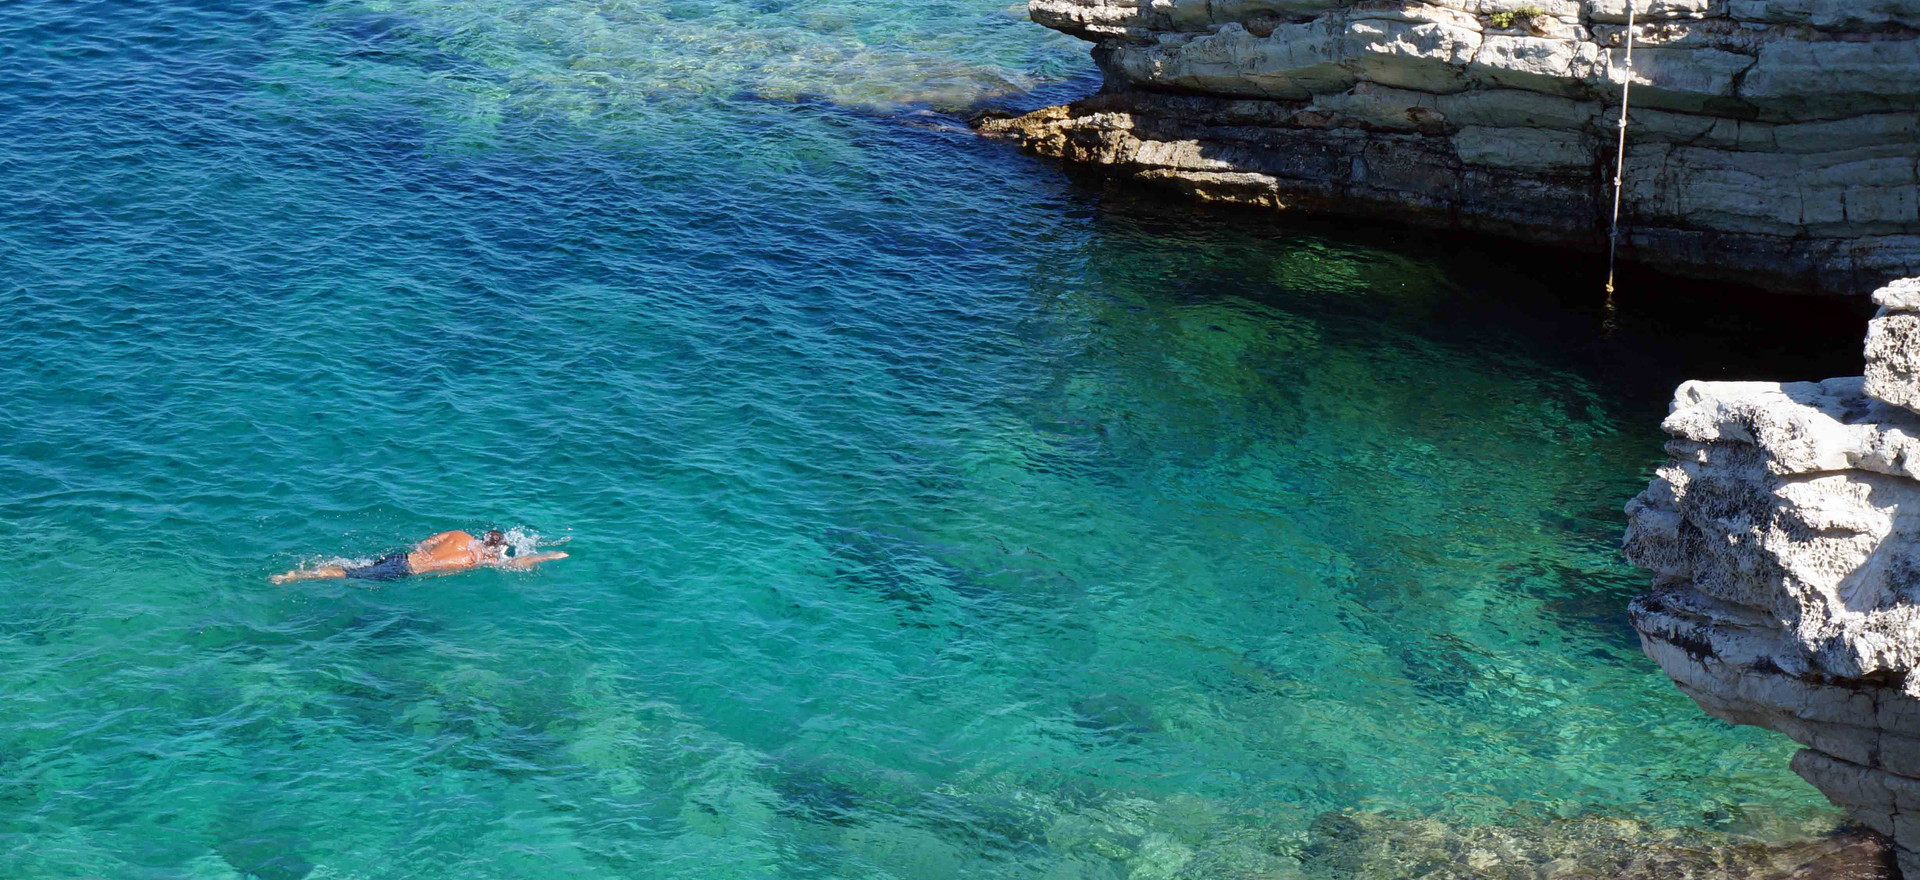 Swimming in the crystal clear waters